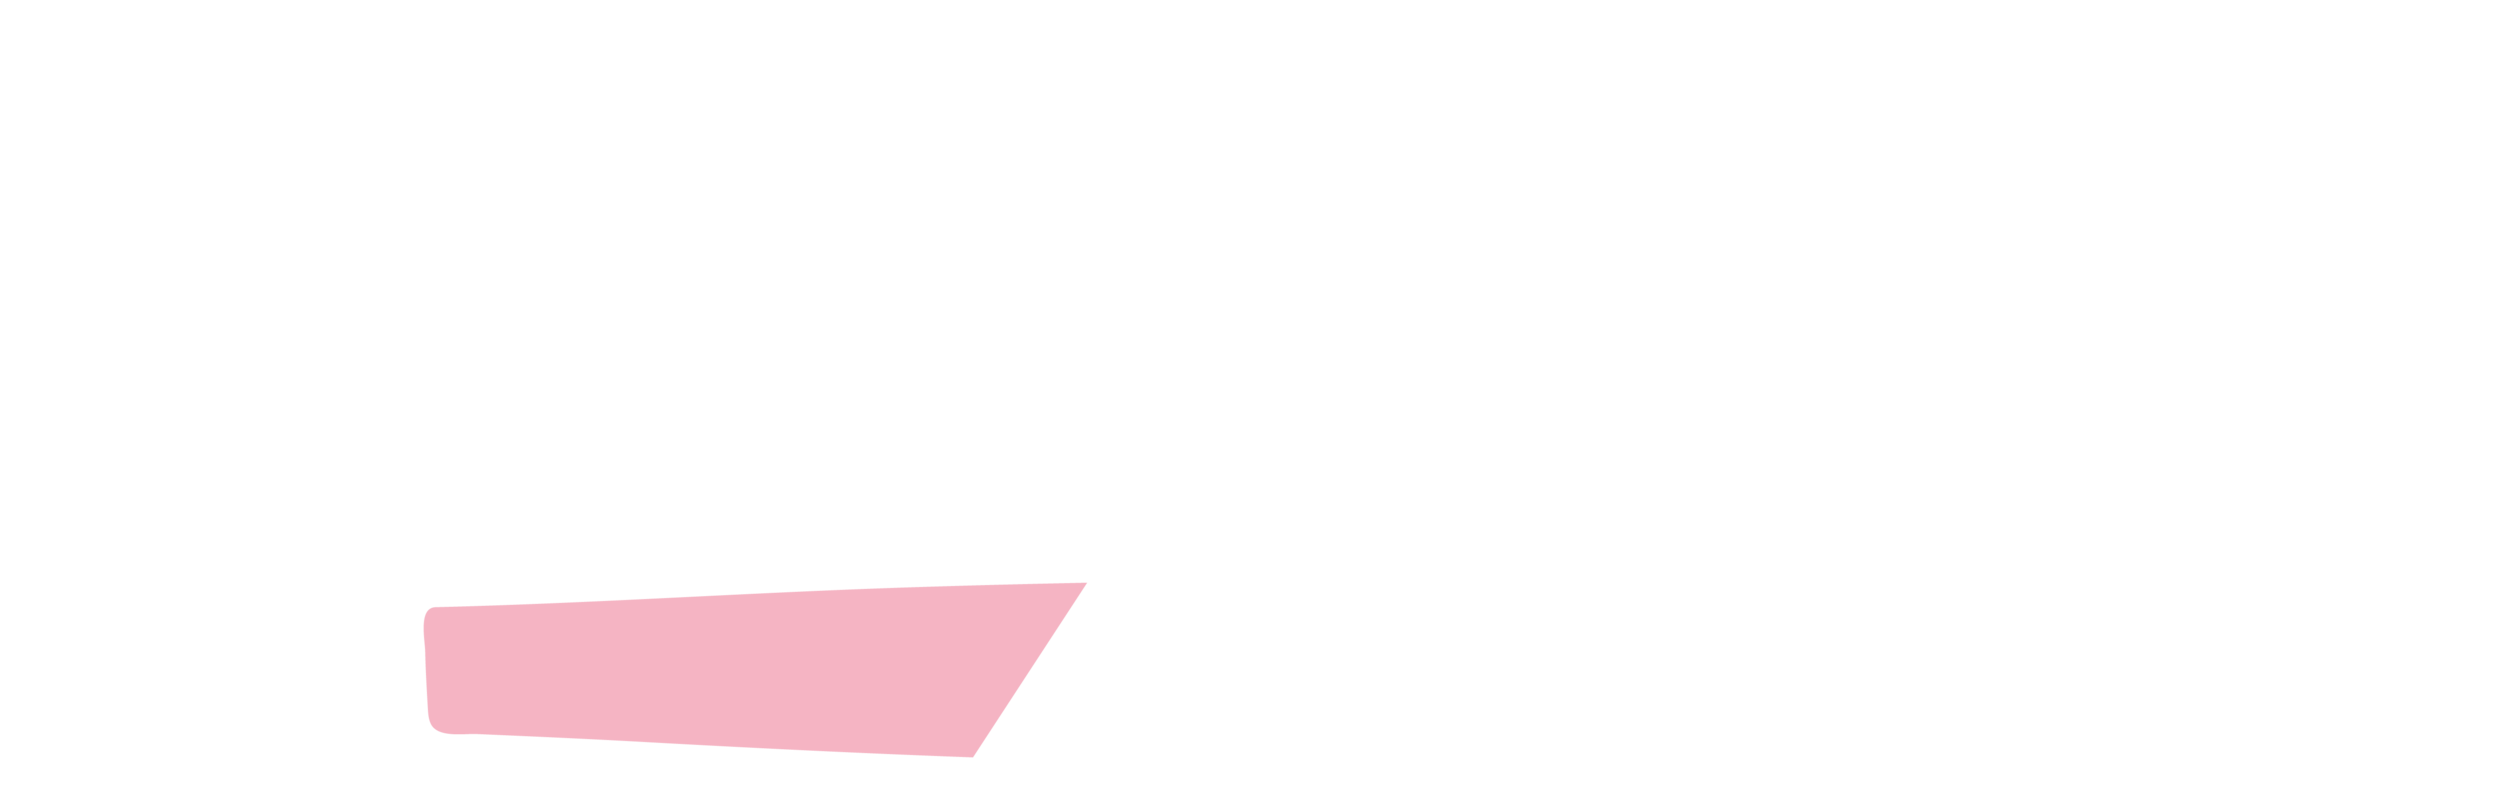 Paint_A_F_Pink.png